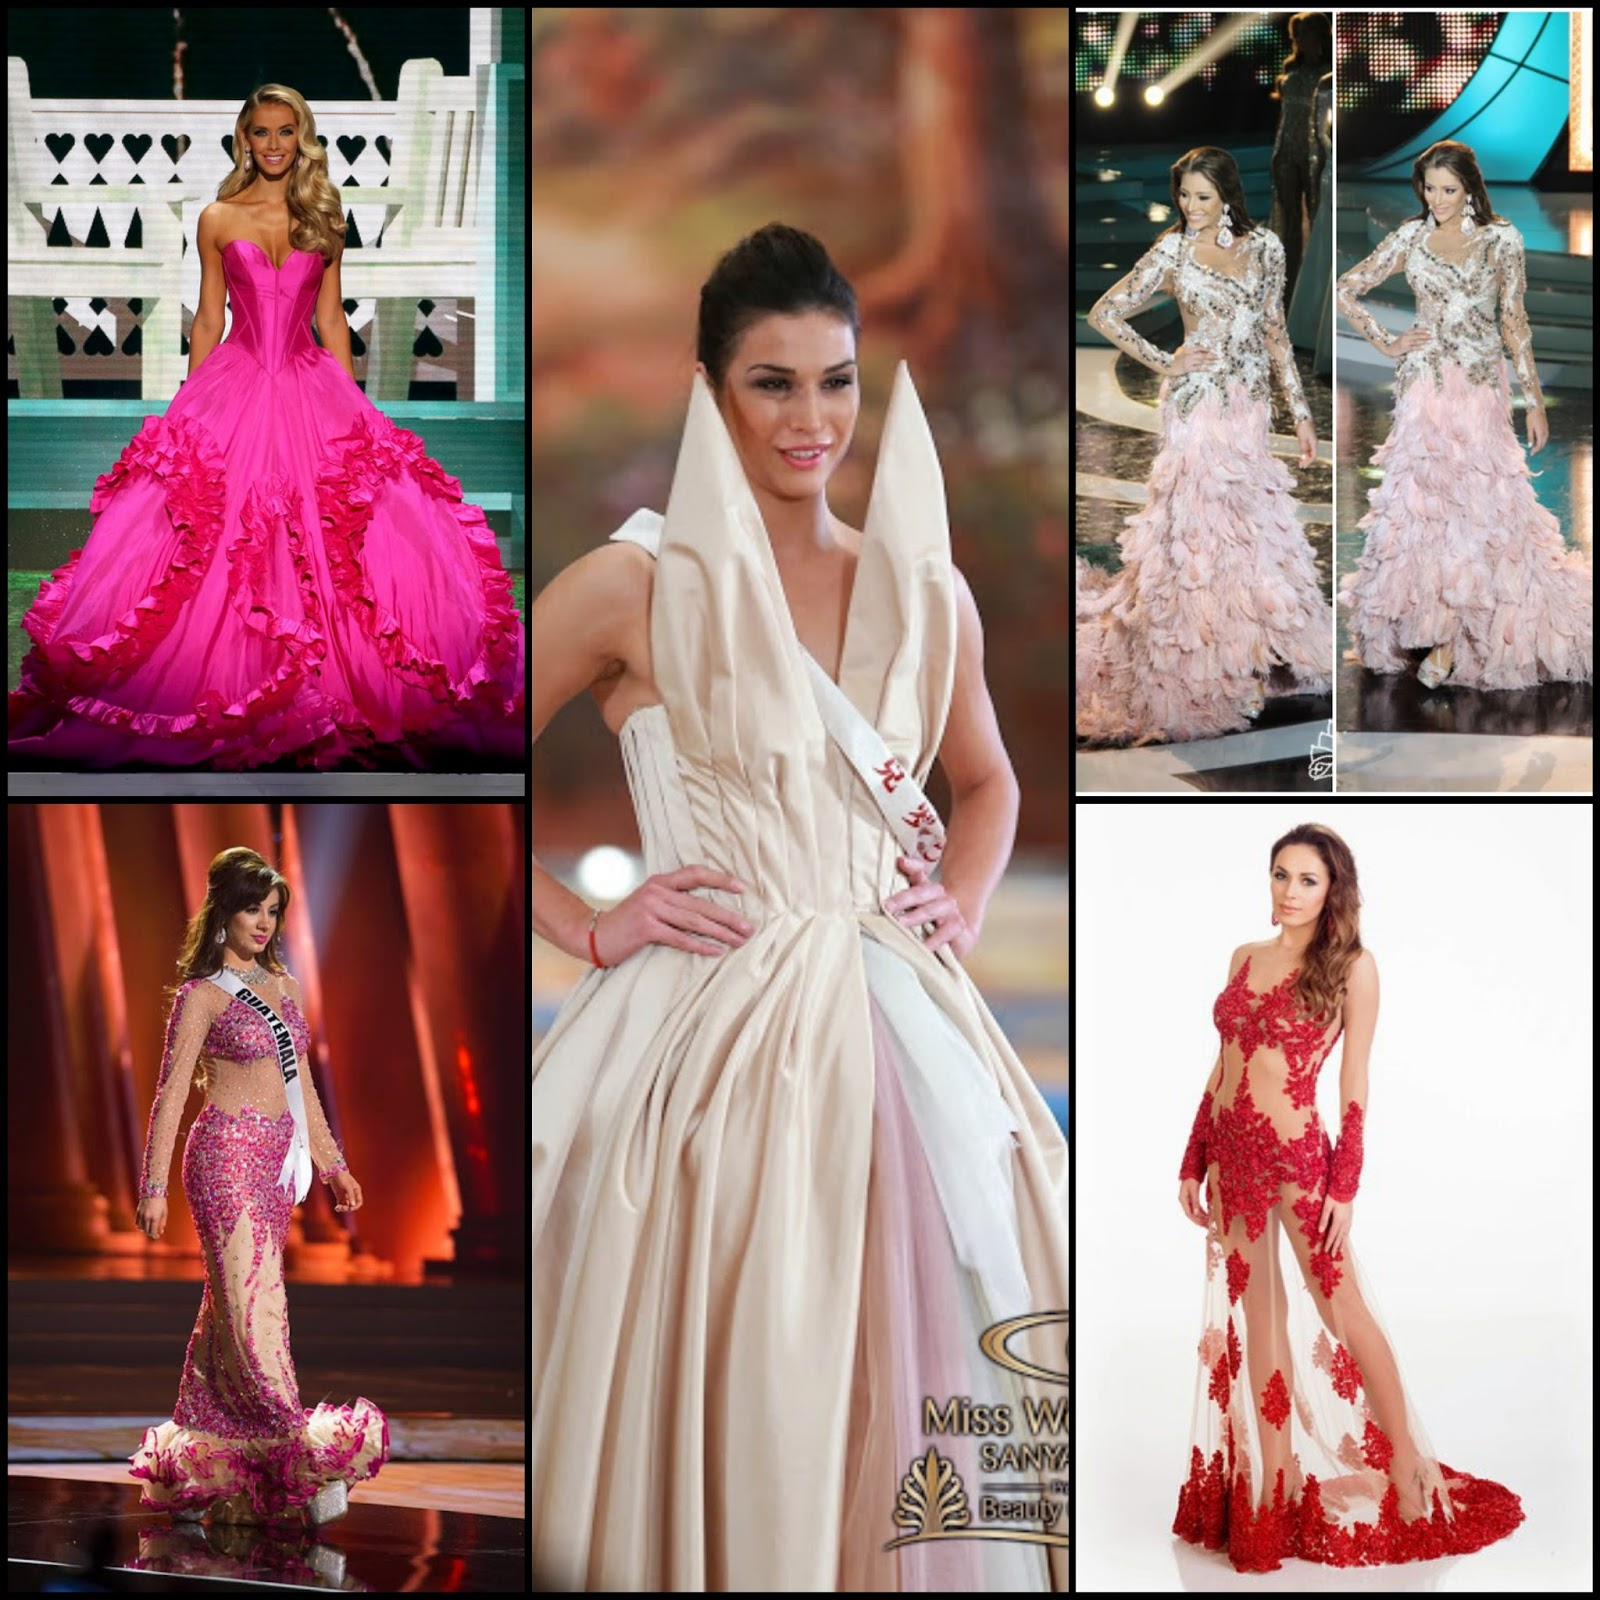 sashes and tiaras the most oh dear ayyy mija beauty pageant gowns of 2015 clockwise l to r miss oklahoma usa and eventual miss usa at miss usa 2015 miss at miss world 2015 top model world dress